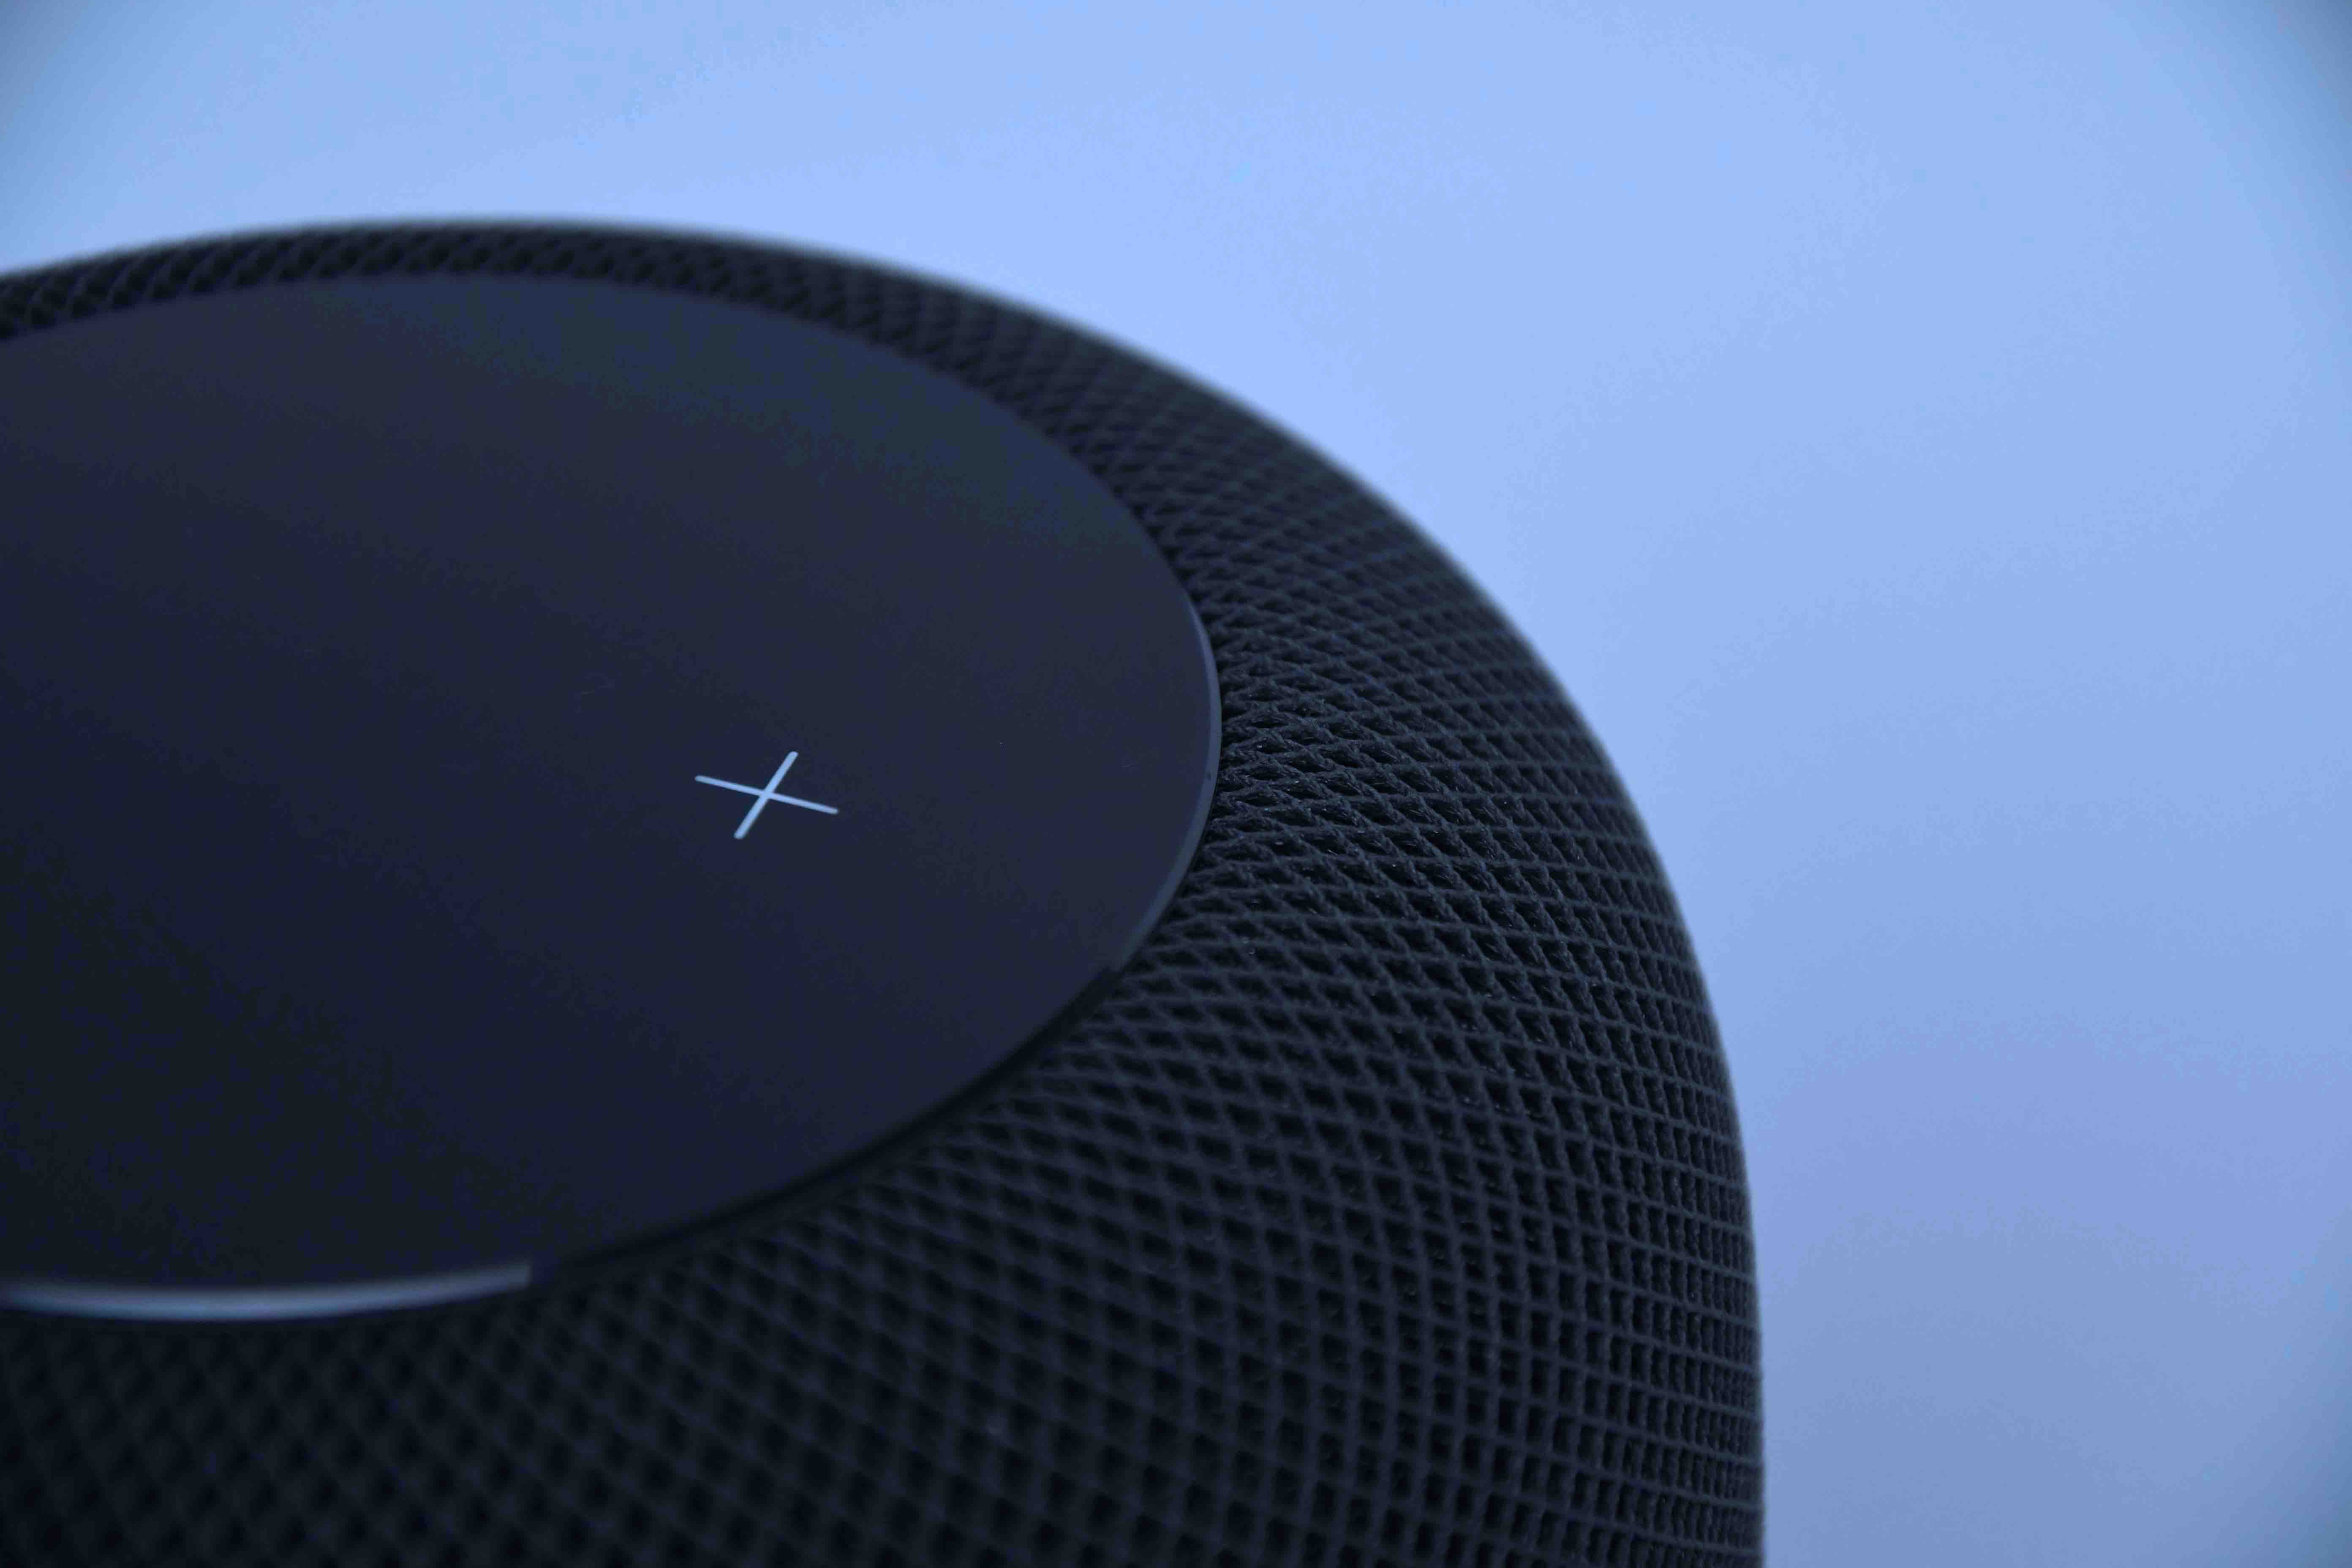 Voice search optimisation for Siri queries